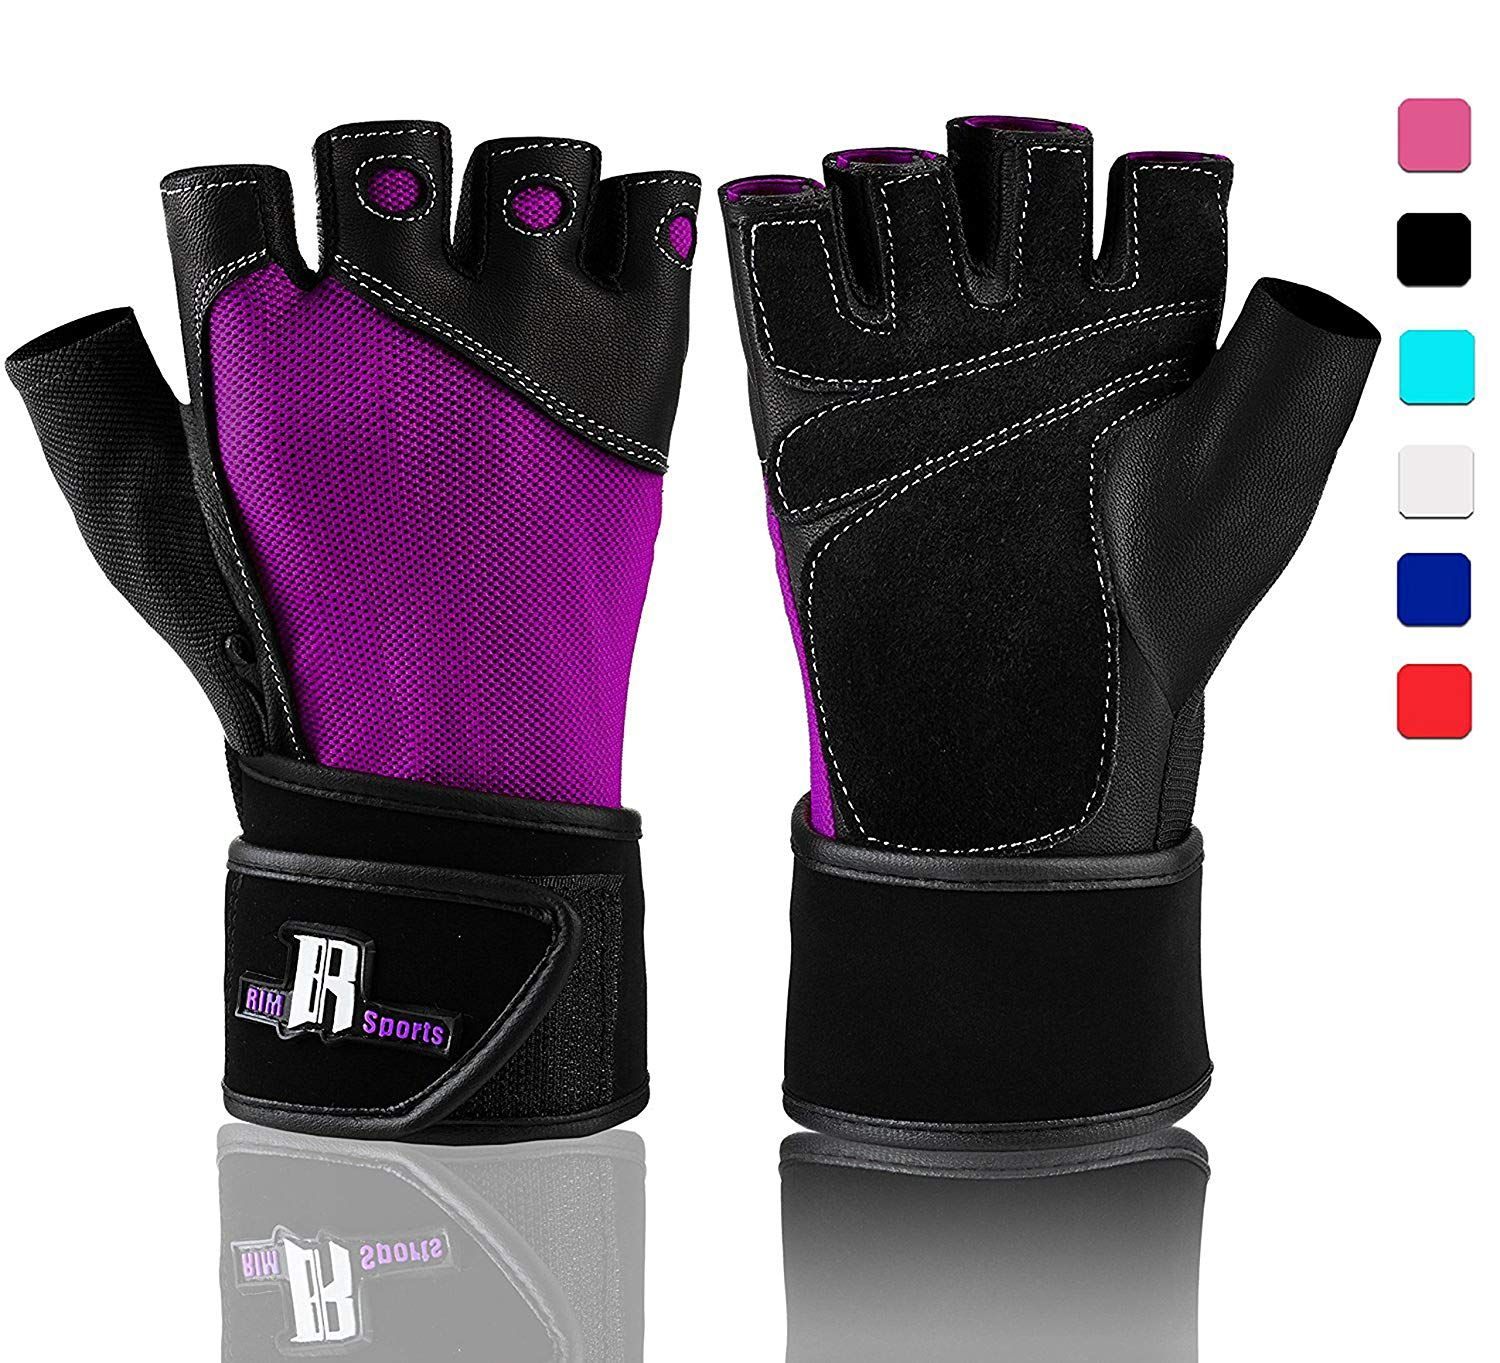 Pin on WEIGHTLIFTING GLOVES GYM WORKOUT GLOVES!